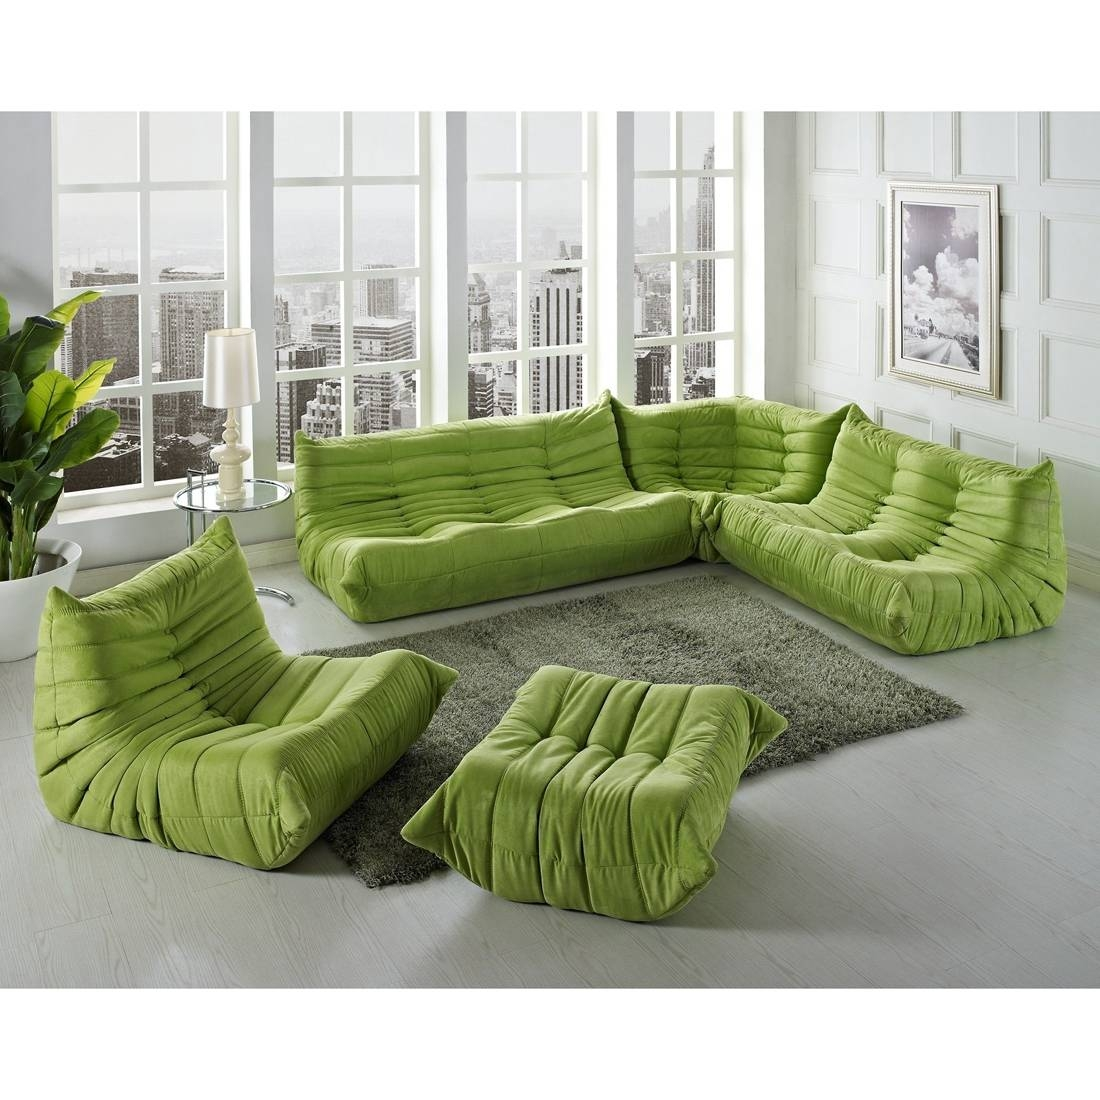 Latest Trend Of Low Profile Sectional Sofas 65 On Cheap Sectional inside Green Leather Sectional Sofas (Image 7 of 15)